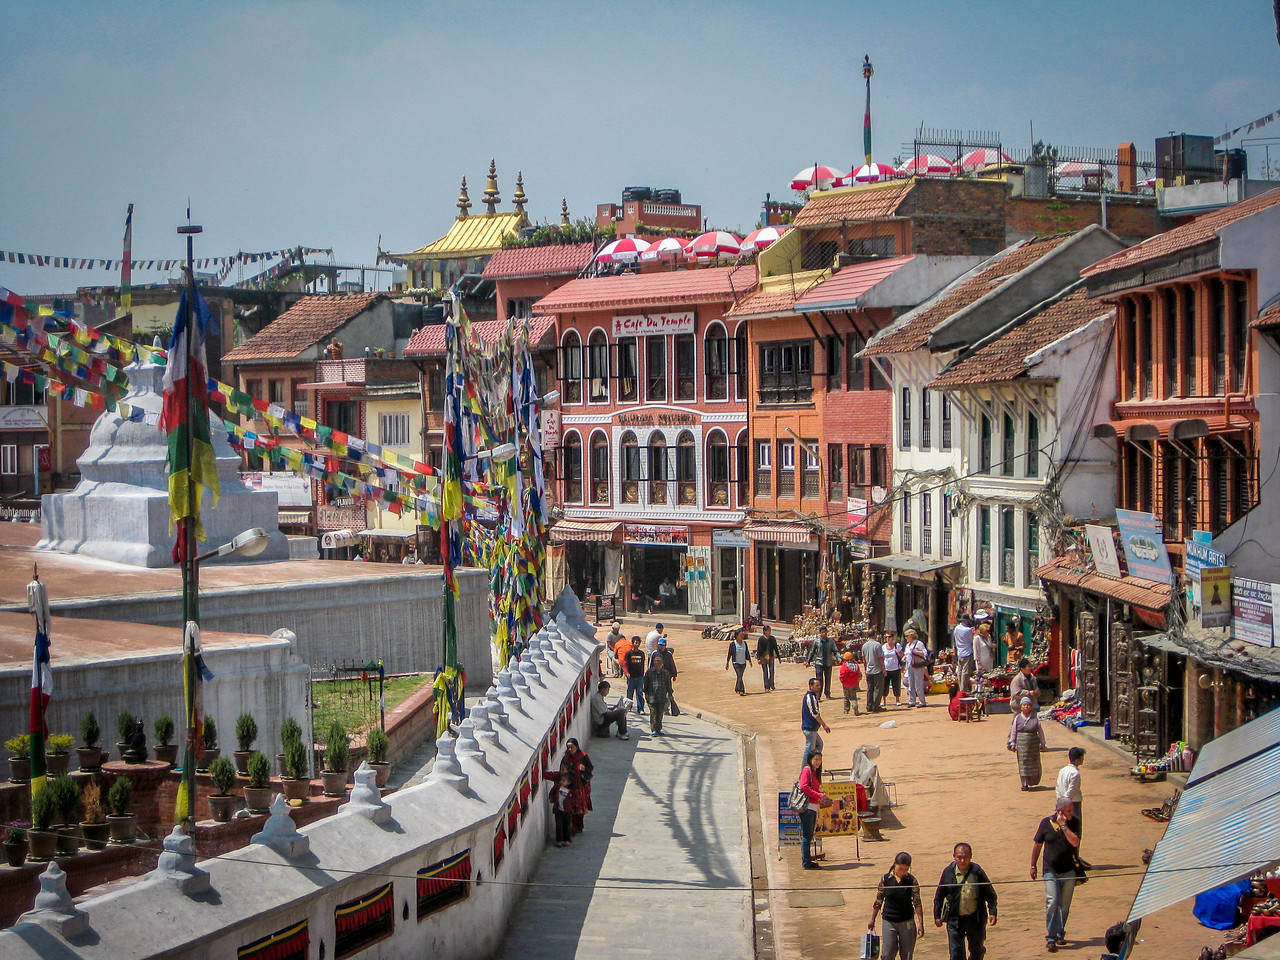 Things to Do in Kathmandu: What to See, Where to Stay & More